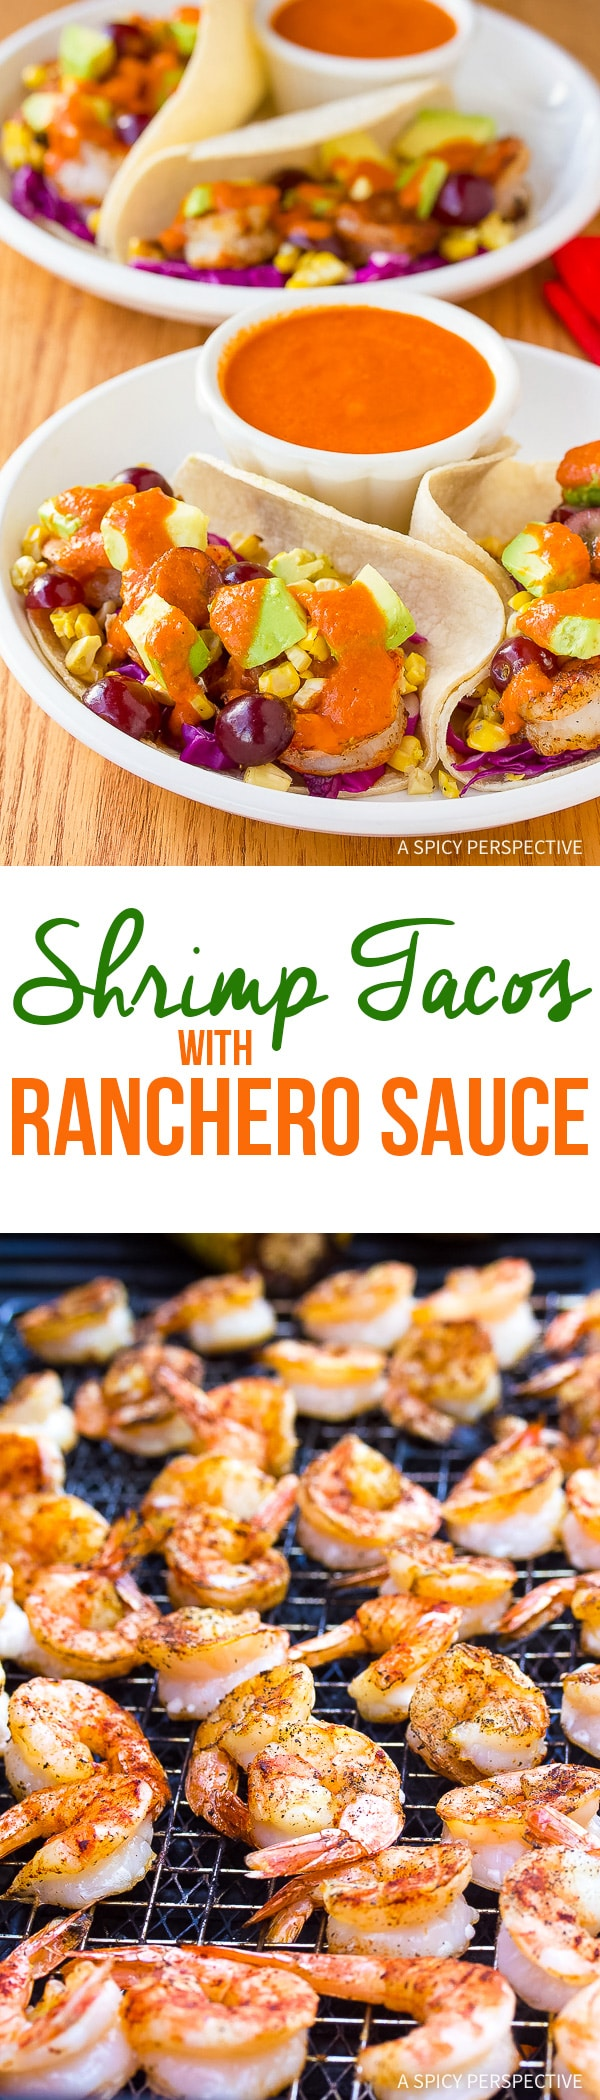 Zesty Shrimp Tacos Recipe with Ranchero Sauce